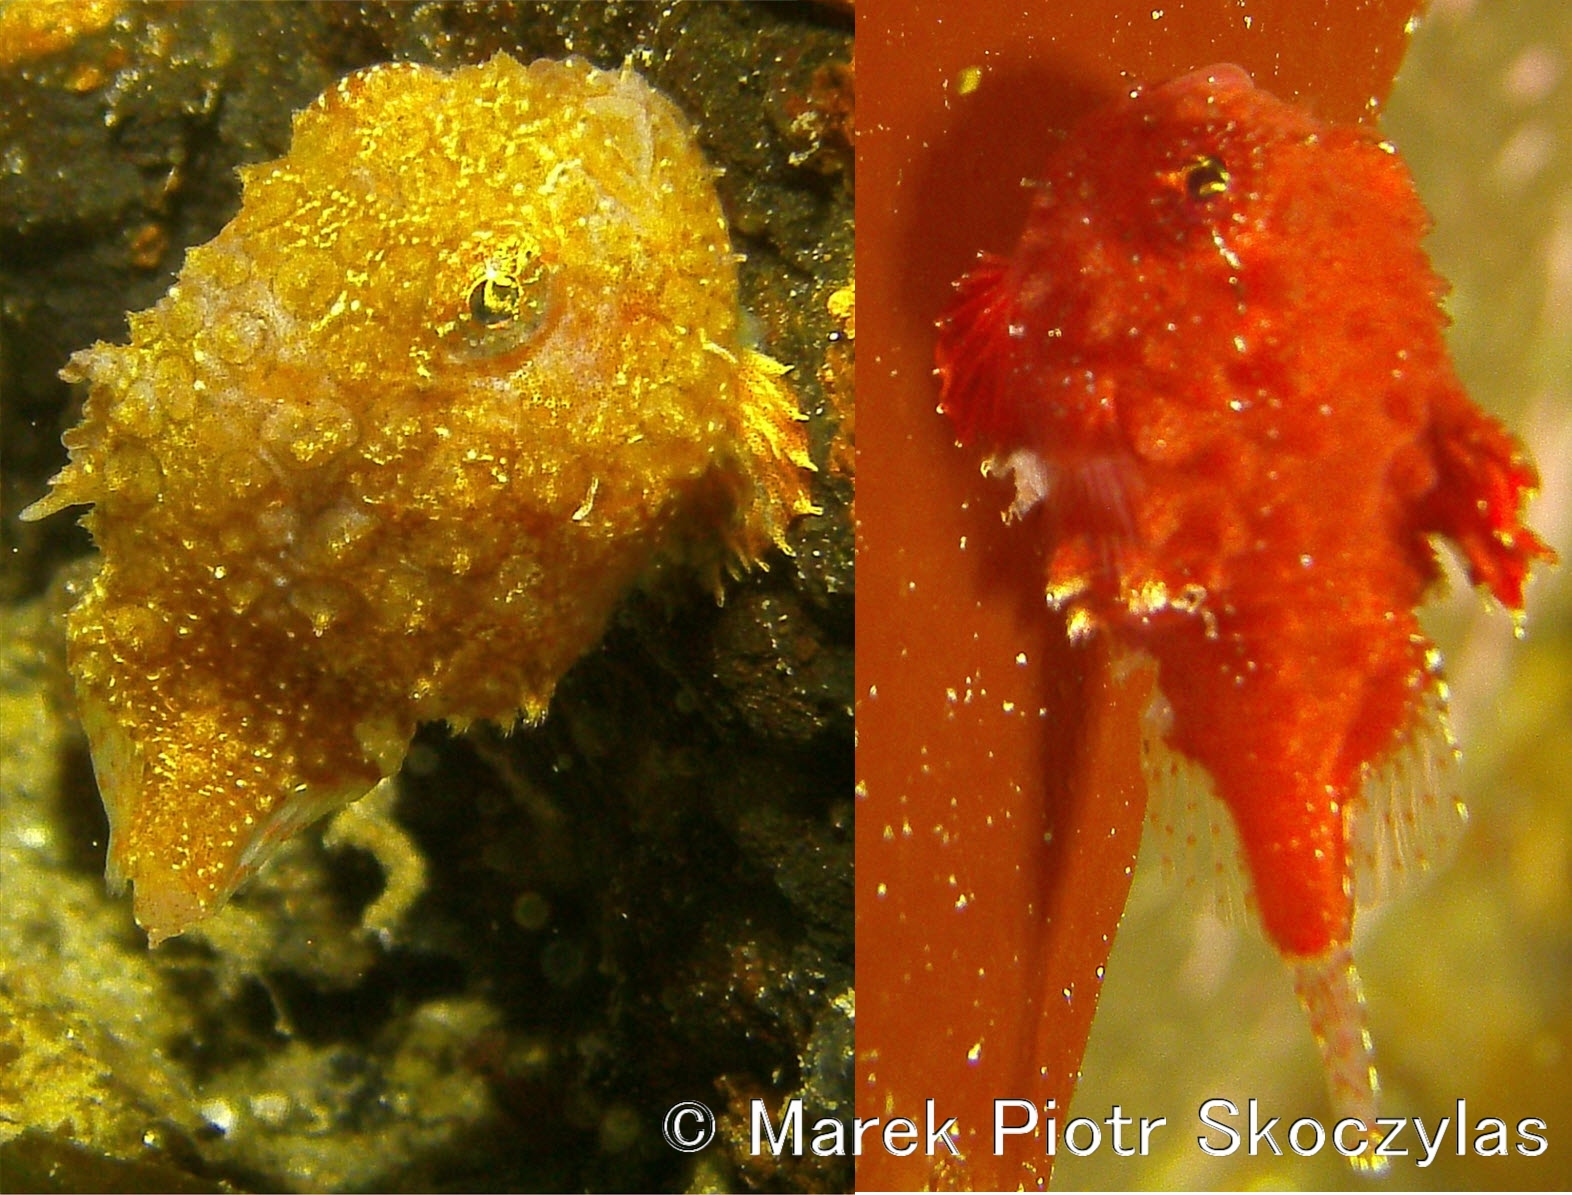 I recently started publishing on-line my over 44 thousand picture database of Puget Sound Critters organized by Species. The work has just begun. Flatfish & Rockfish part is completed plus some selected critters like Pacific Spiny Lumpsuckers (Little Cuties) and Puget Sound King Crabs. This work will continue at least for 1 year. Estimated completion Q1 2017. Here is the site: https://mareksk.smugmug.com/